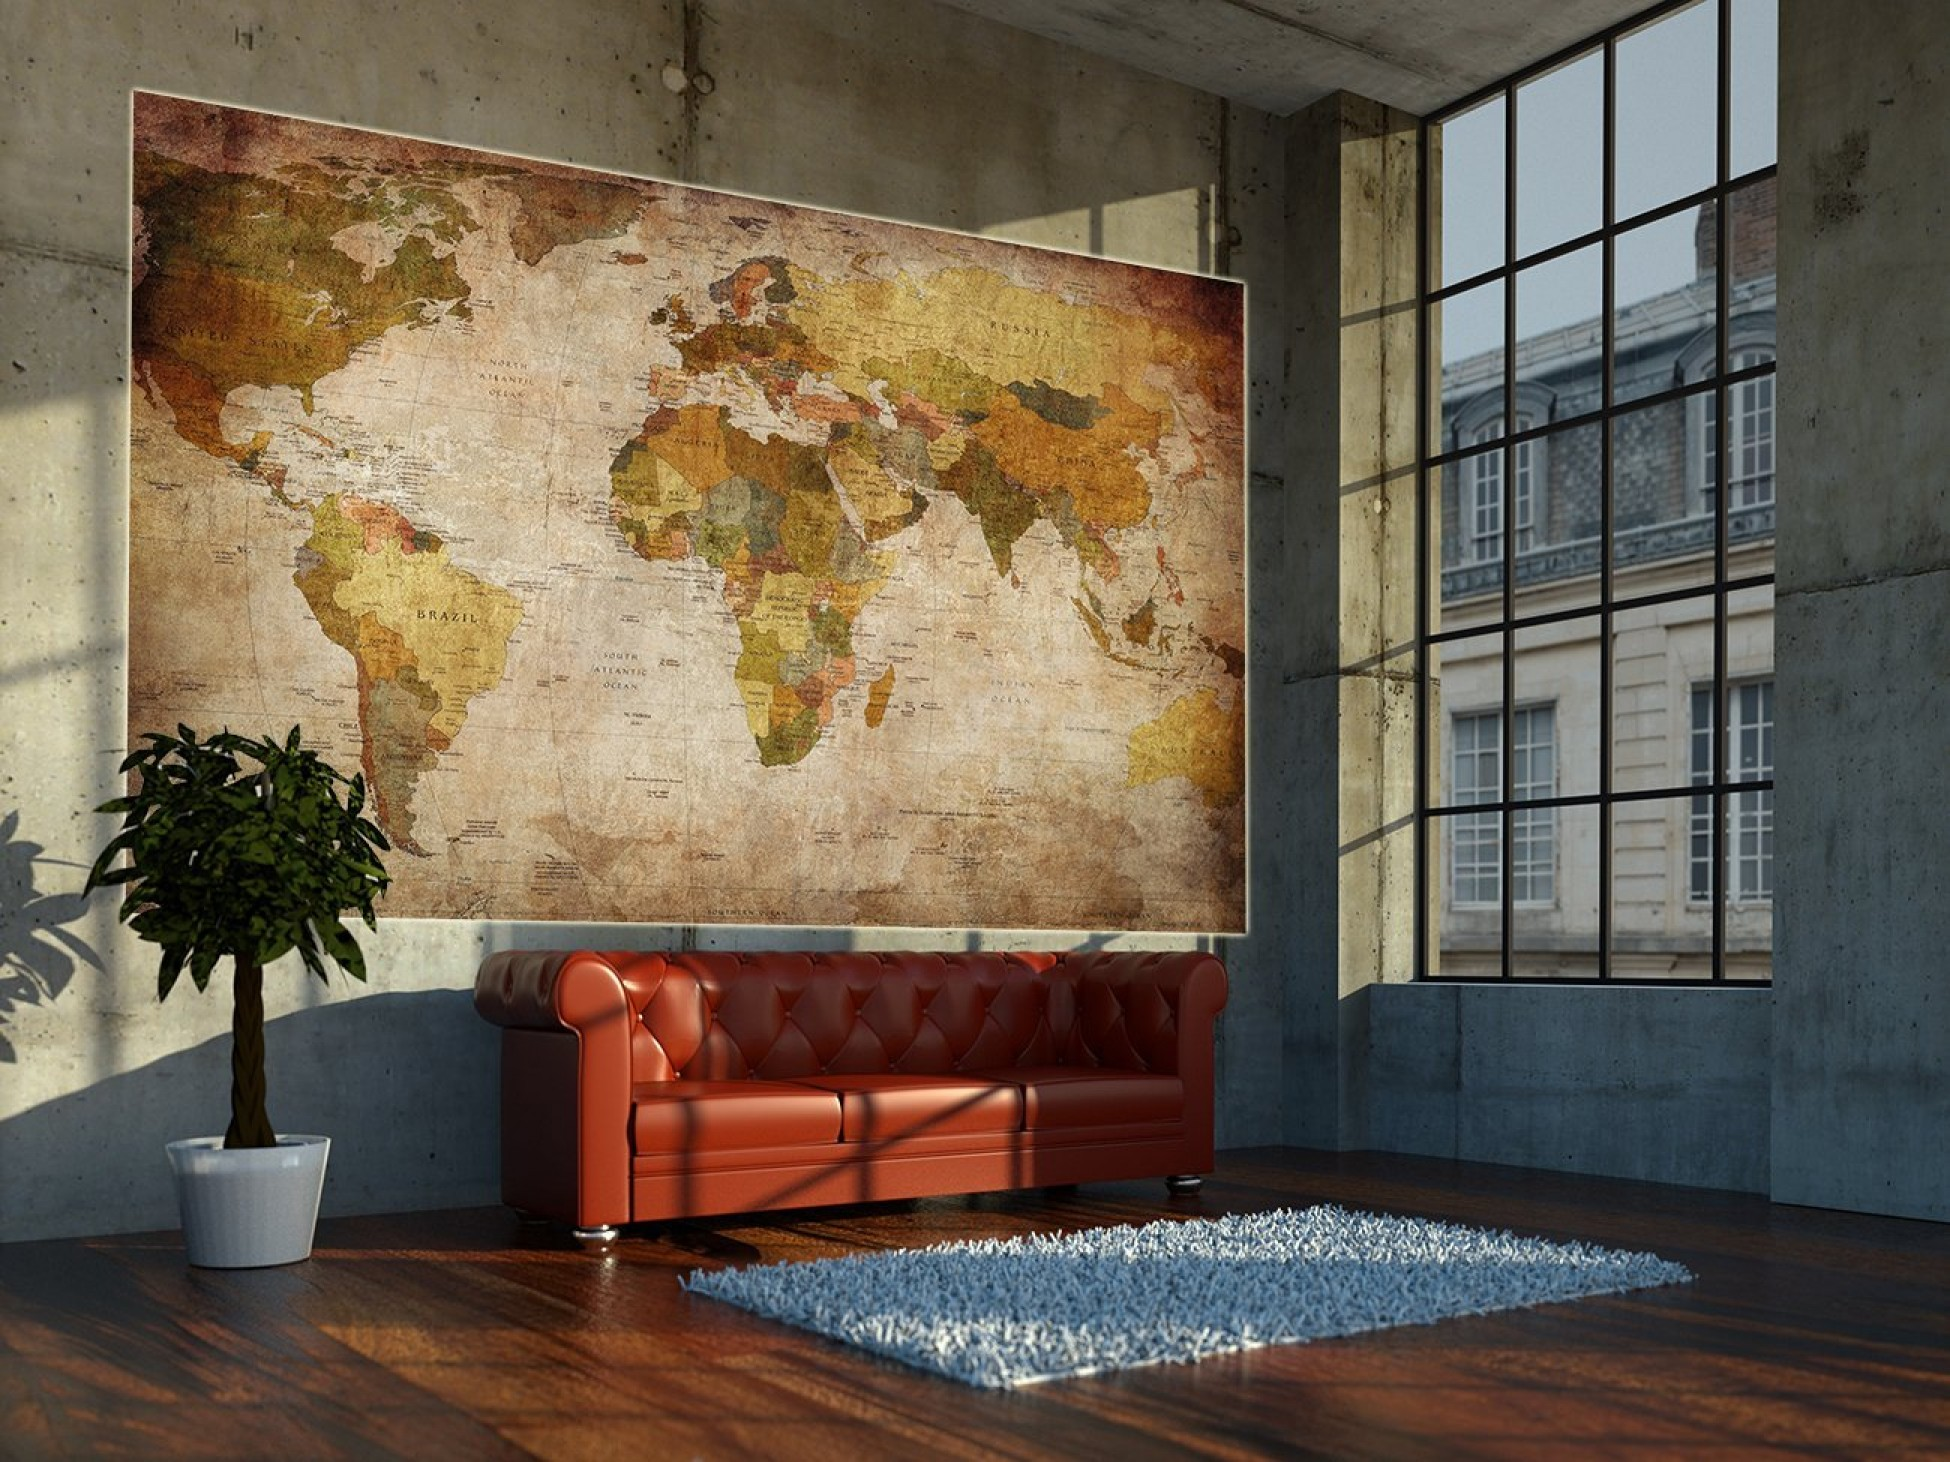 World Home Decor World Map Photo Wallpaper Mural Vintage Retro Motif Xxl